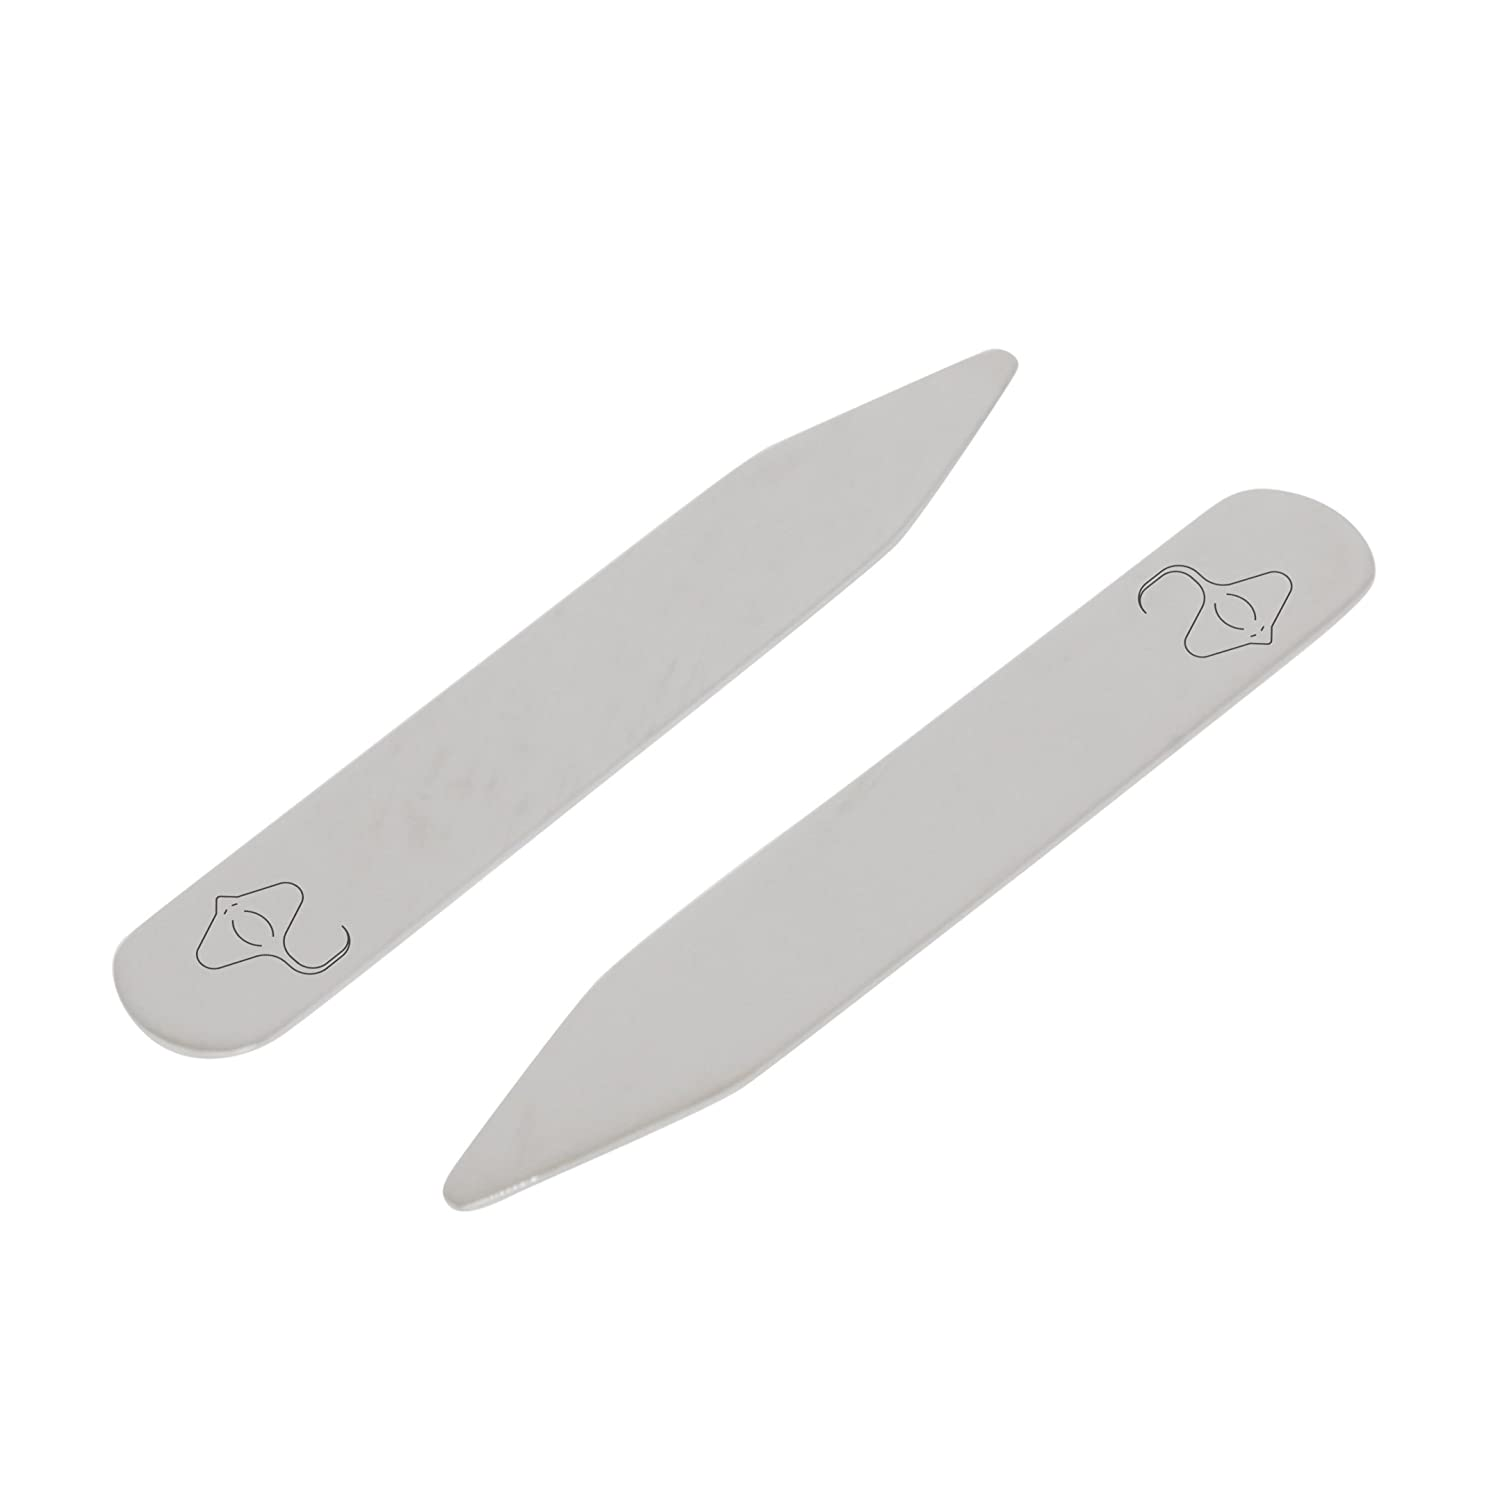 2.5 Inch Metal Collar Stiffeners MODERN GOODS SHOP Stainless Steel Collar Stays With Laser Engraved Sting Ray Design Made In USA